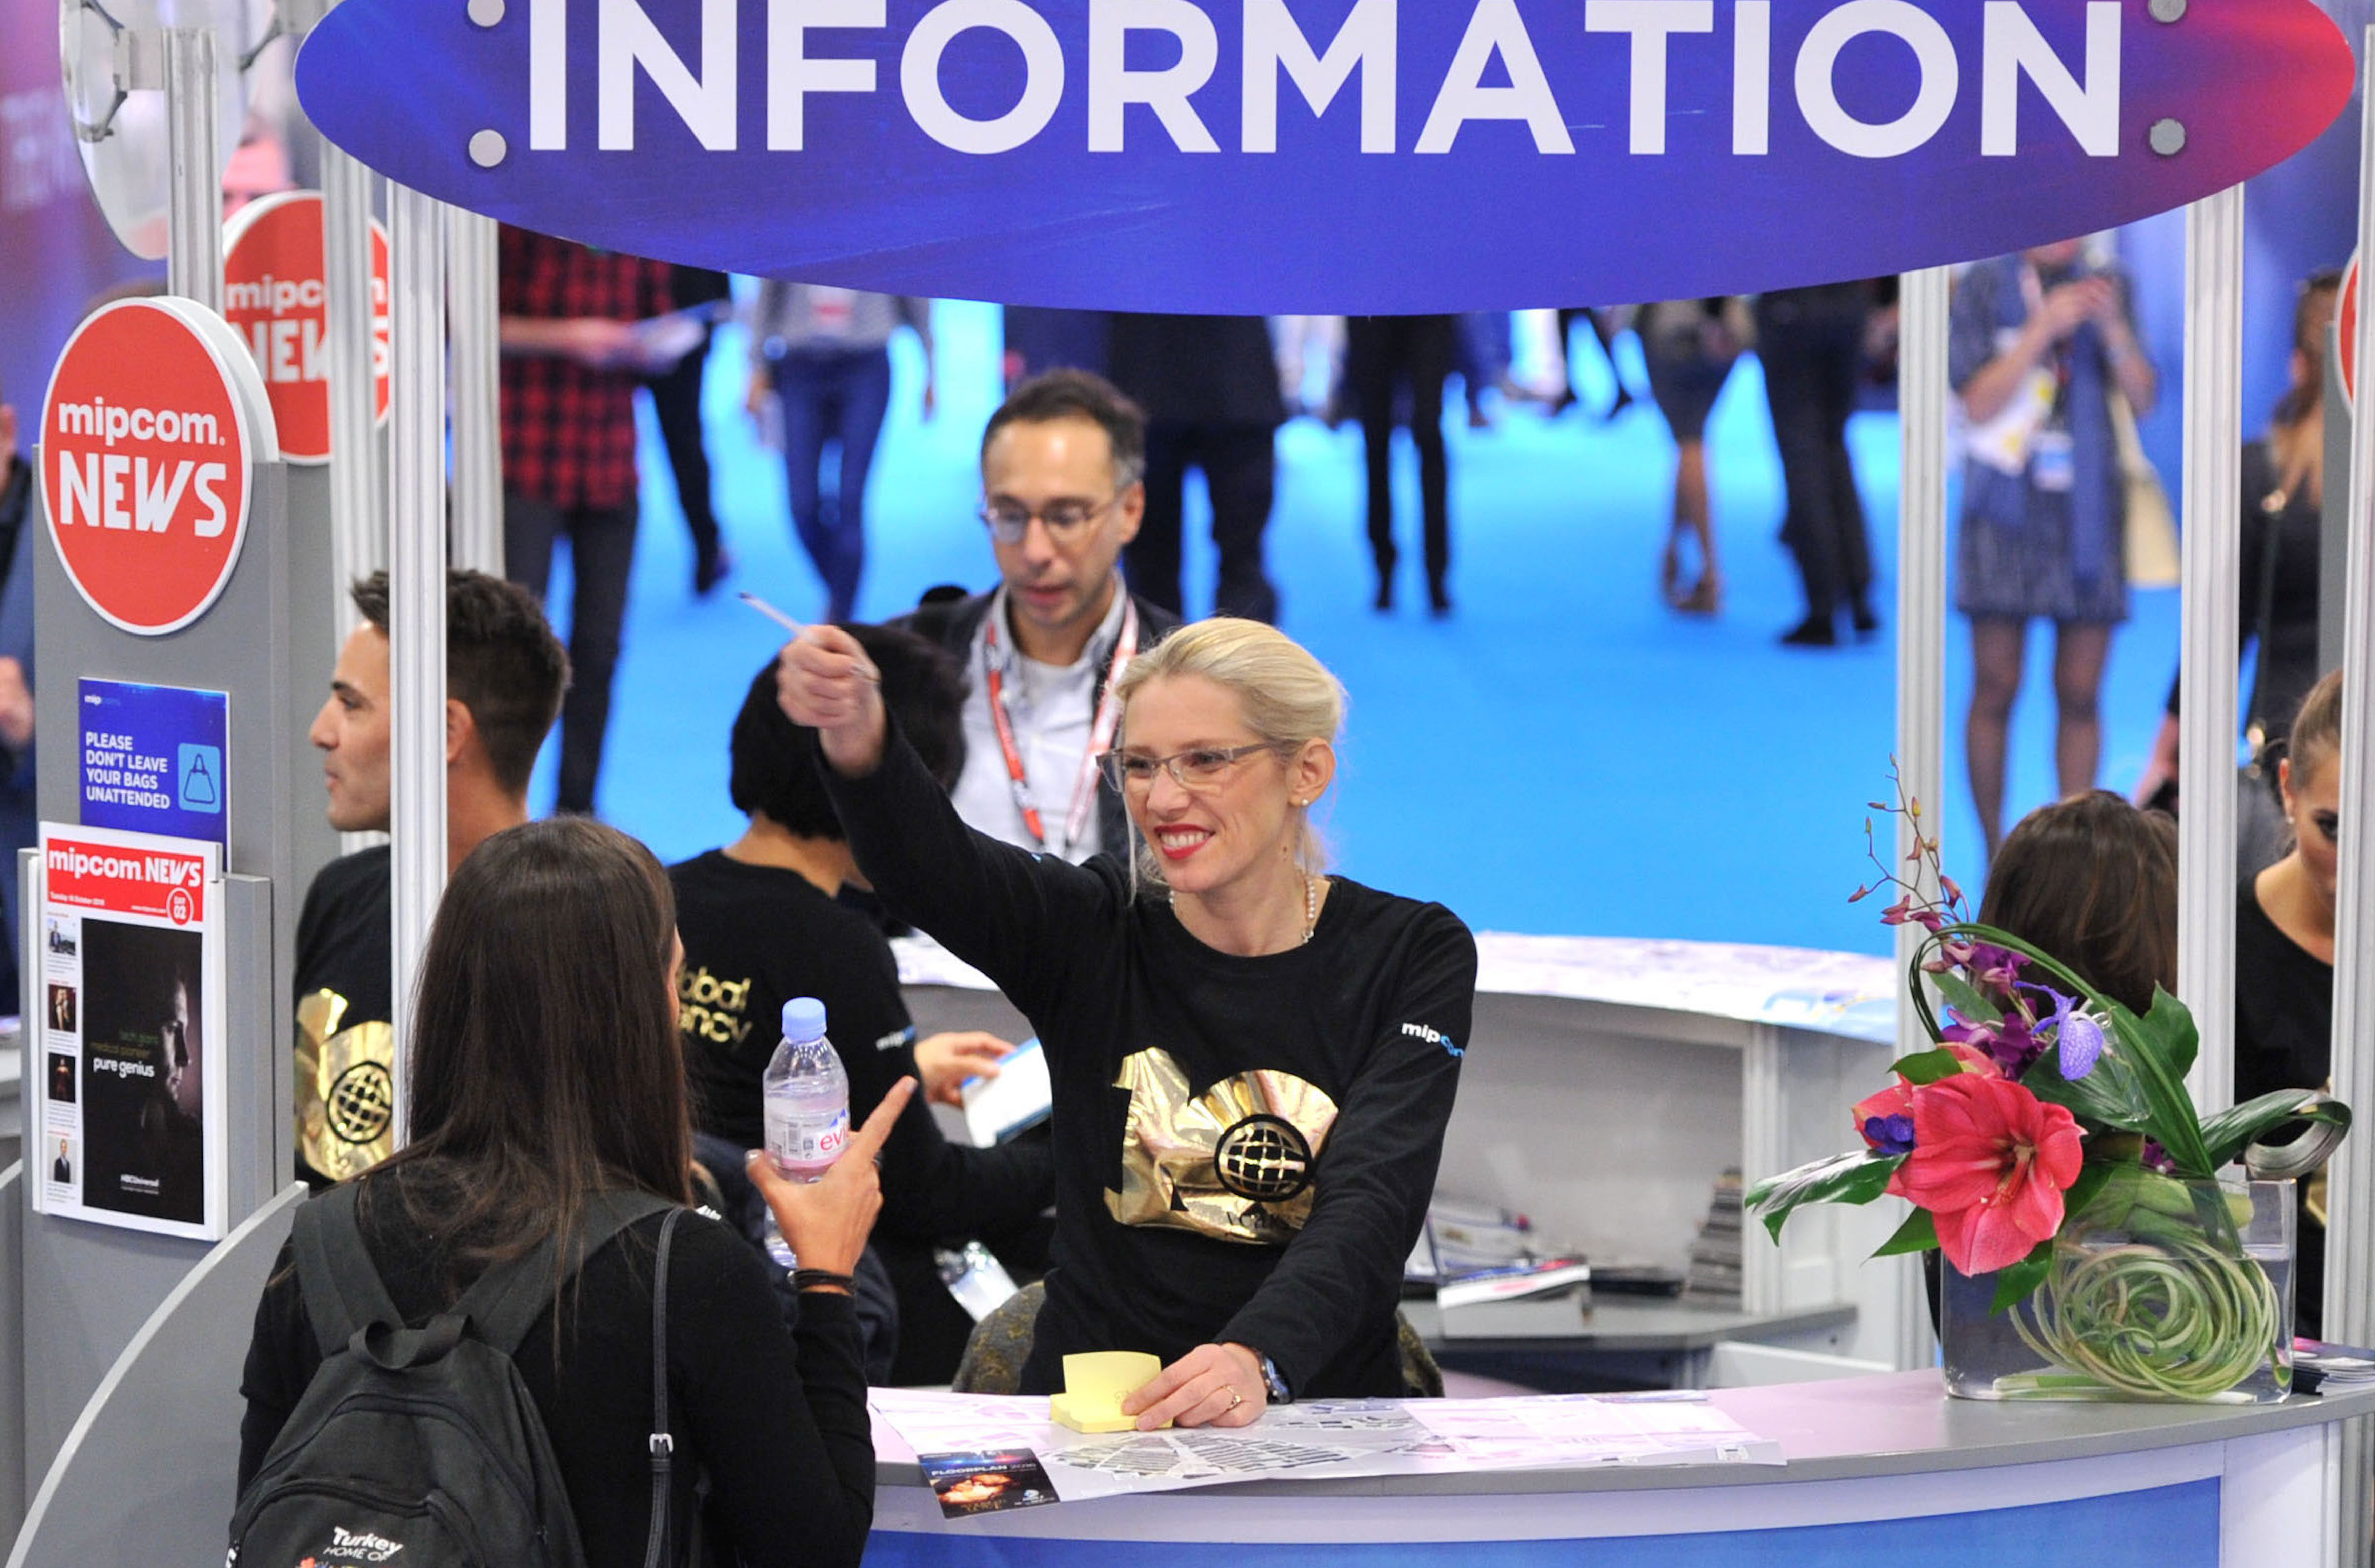 MIPCOM 2016 - SERVICES - INFORMATION POINT